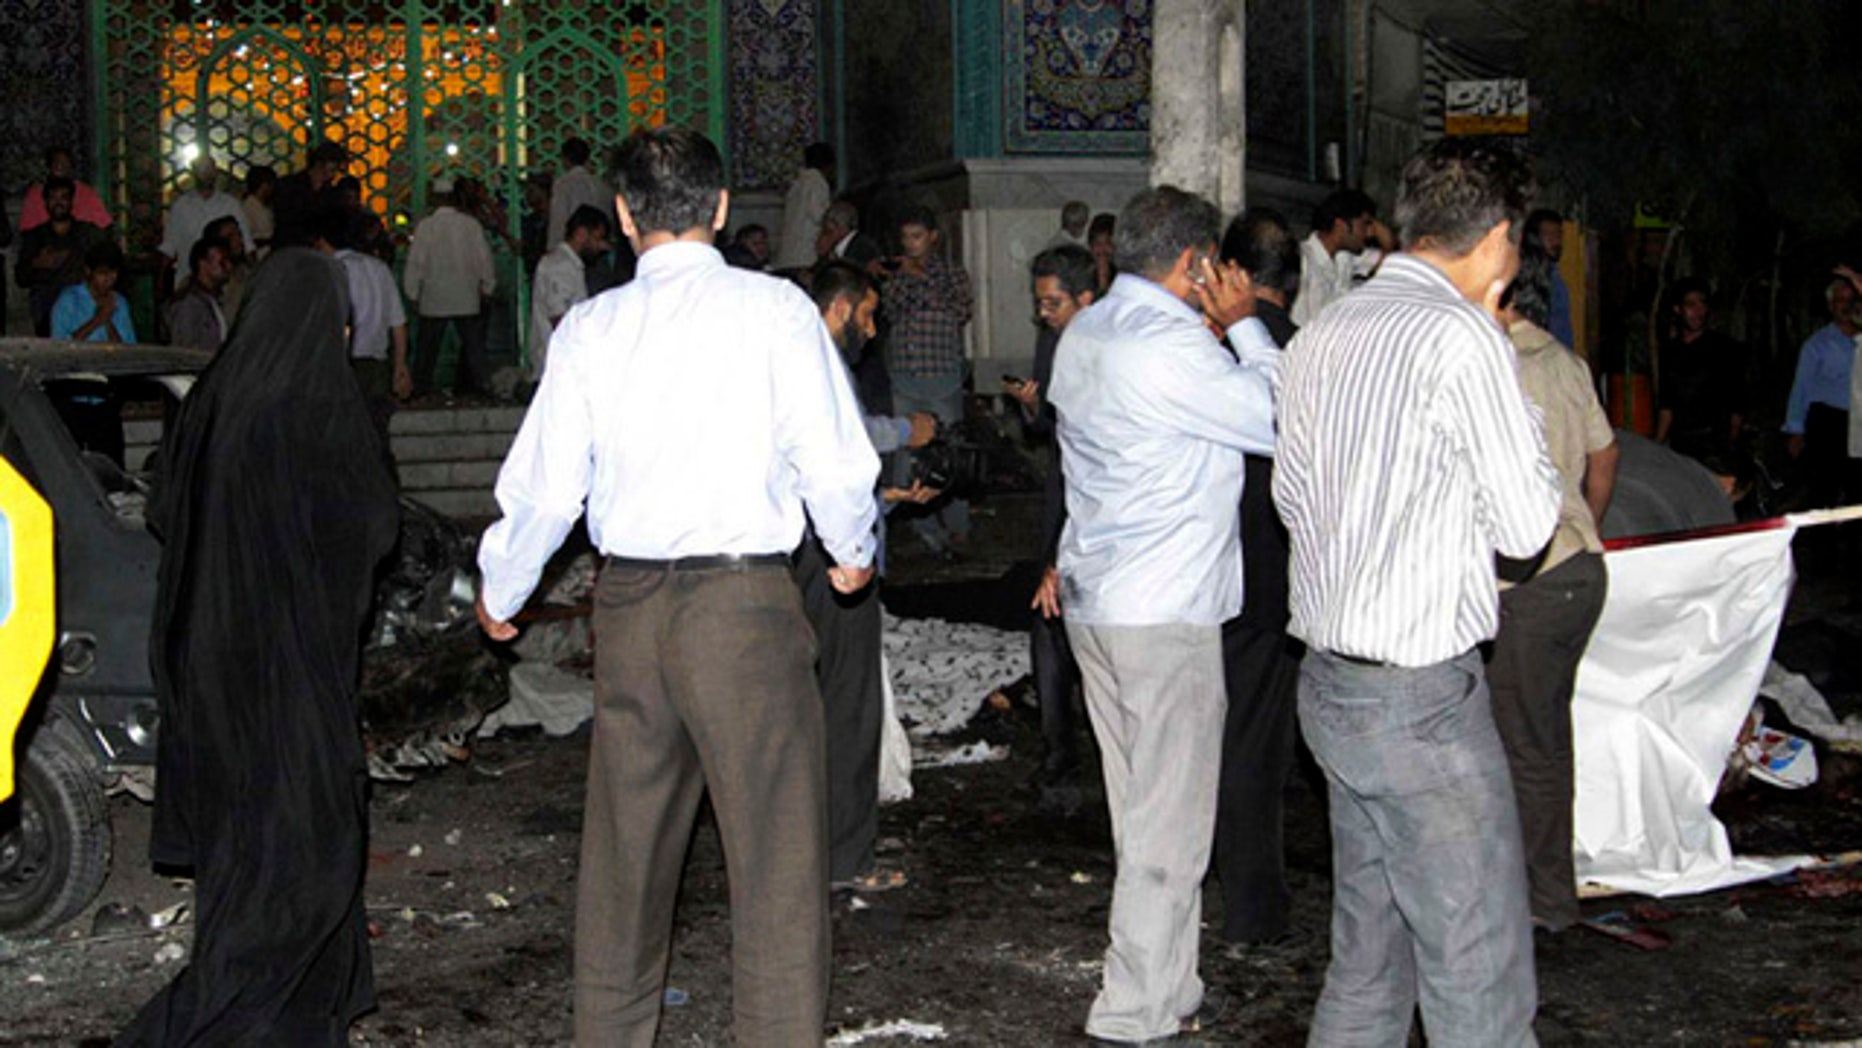 July 15: In this picture released by the Iran's official Islamic Republic News Agency (IRNA), people gather at the scene of bomb blasts in the provincial capital of Zahedan, Iran.